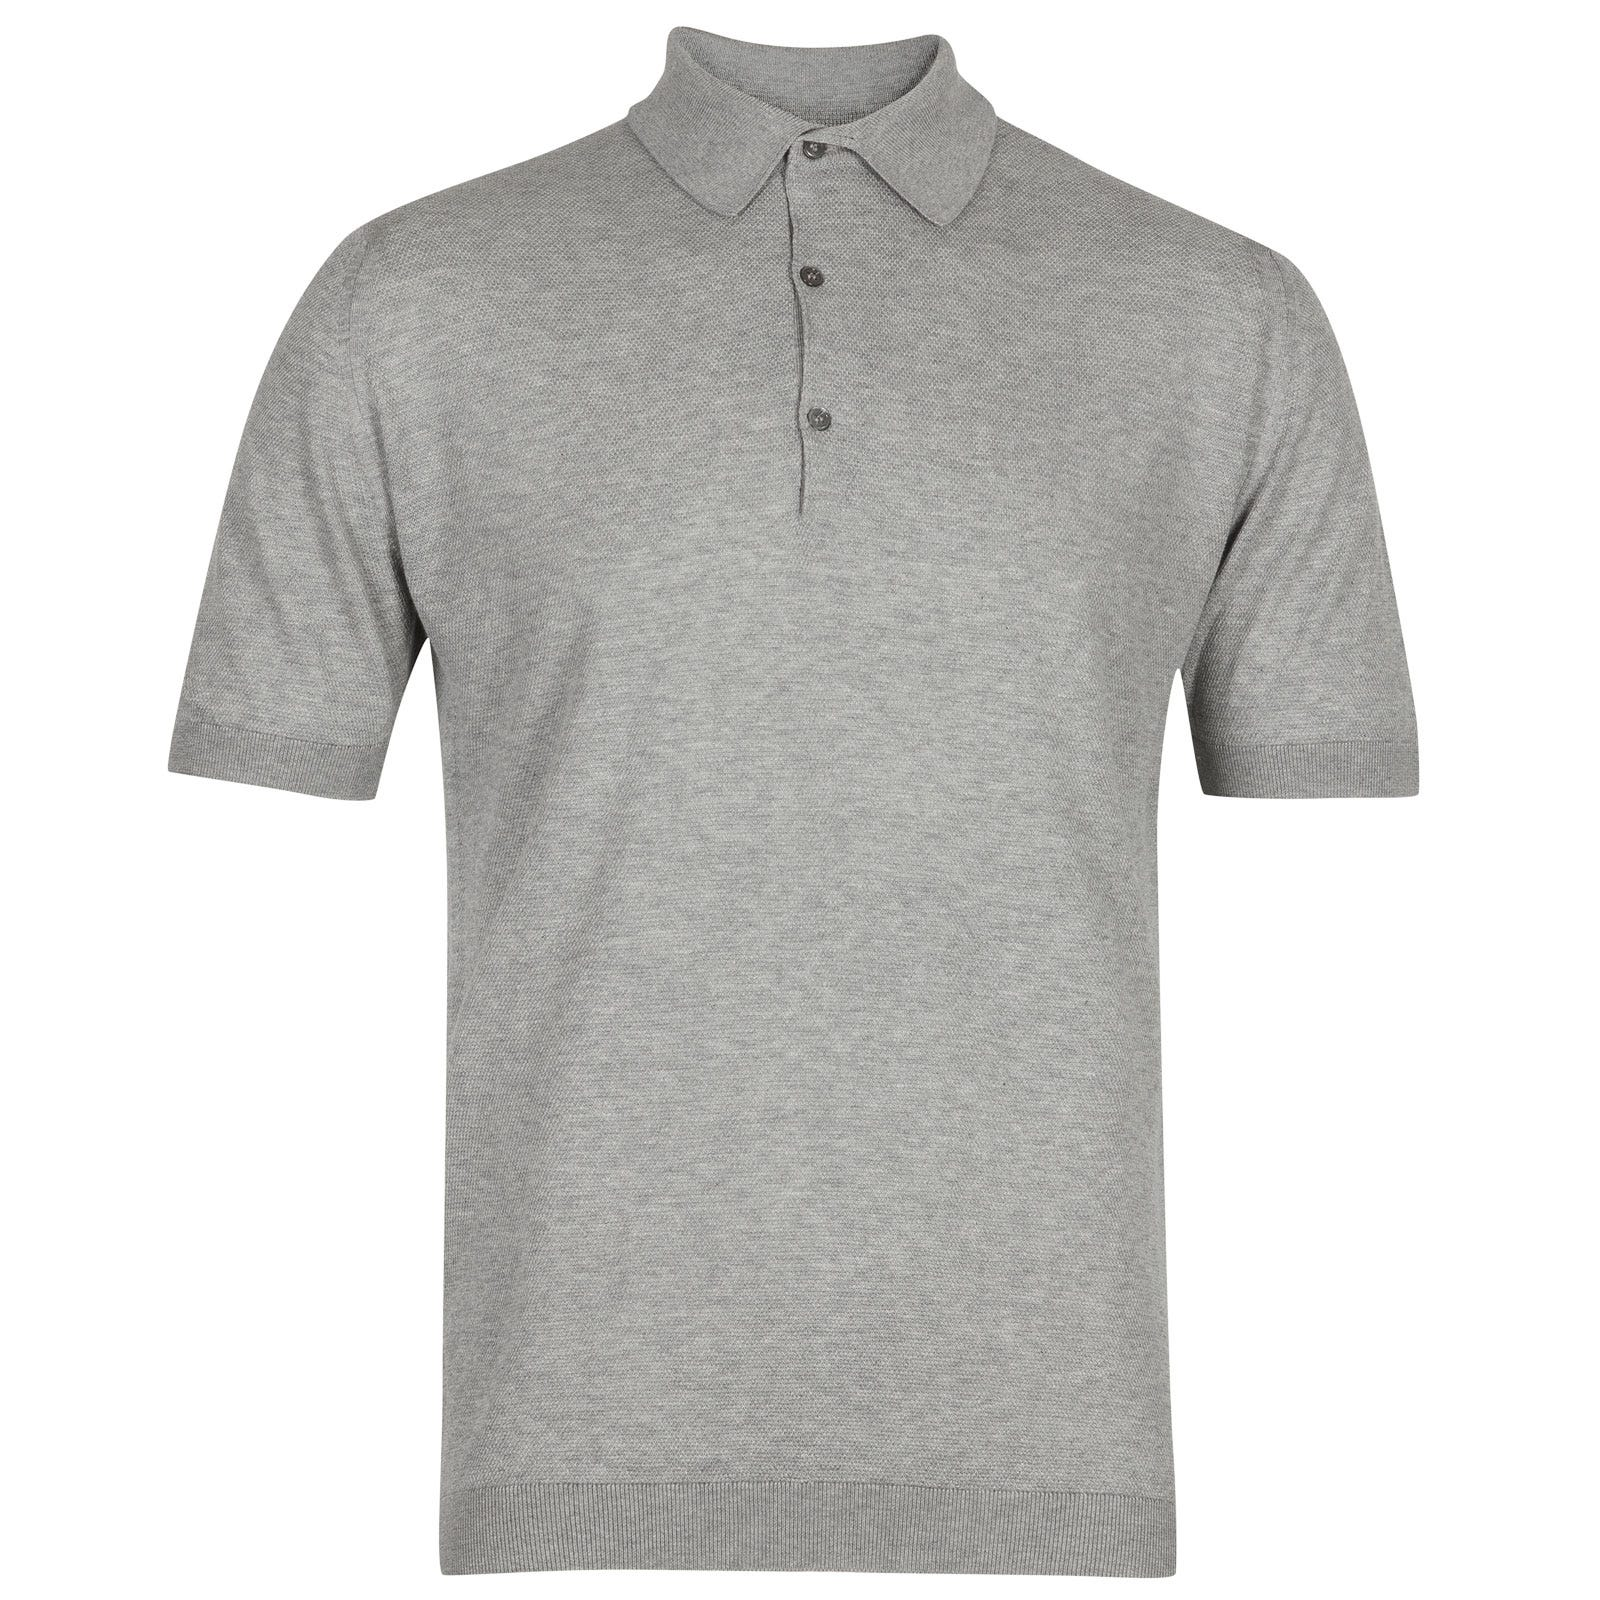 John Smedley roth Sea Island Cotton Shirt in Silver-XL